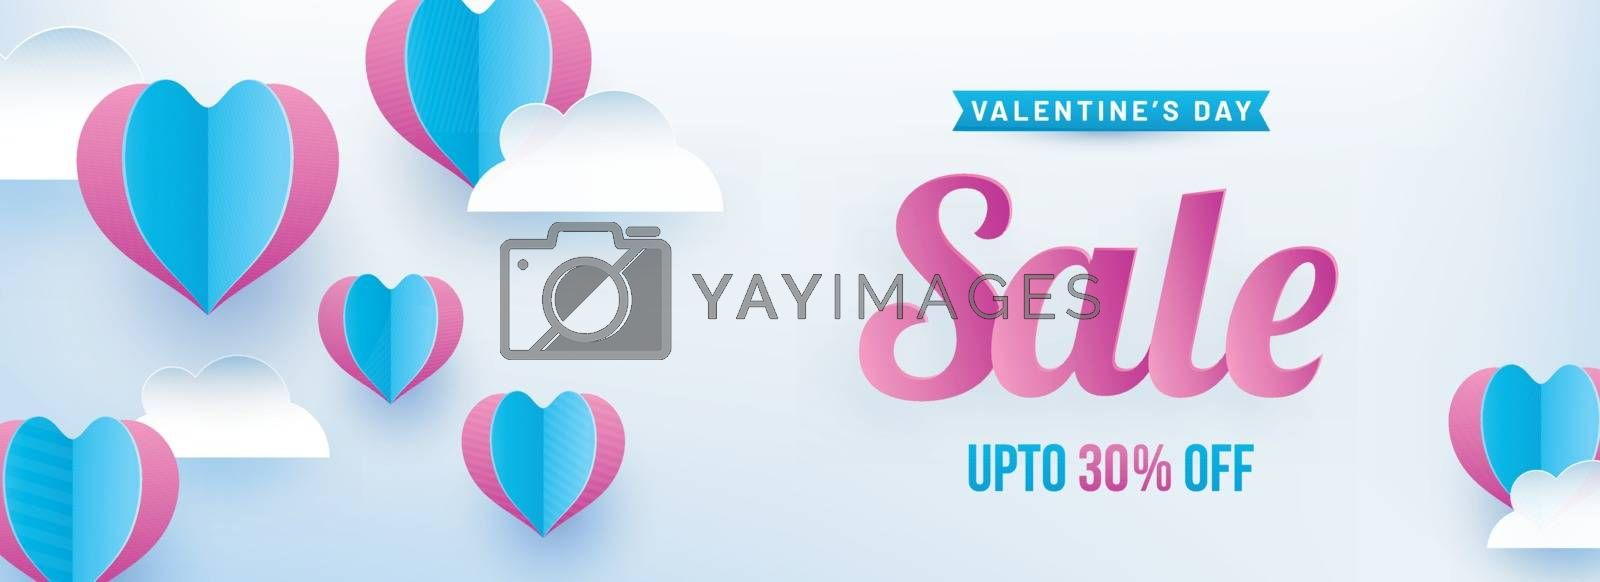 Paper origami of heart shapes on cloudy background, Valentine's Day sale banner design with 30% discount offer.